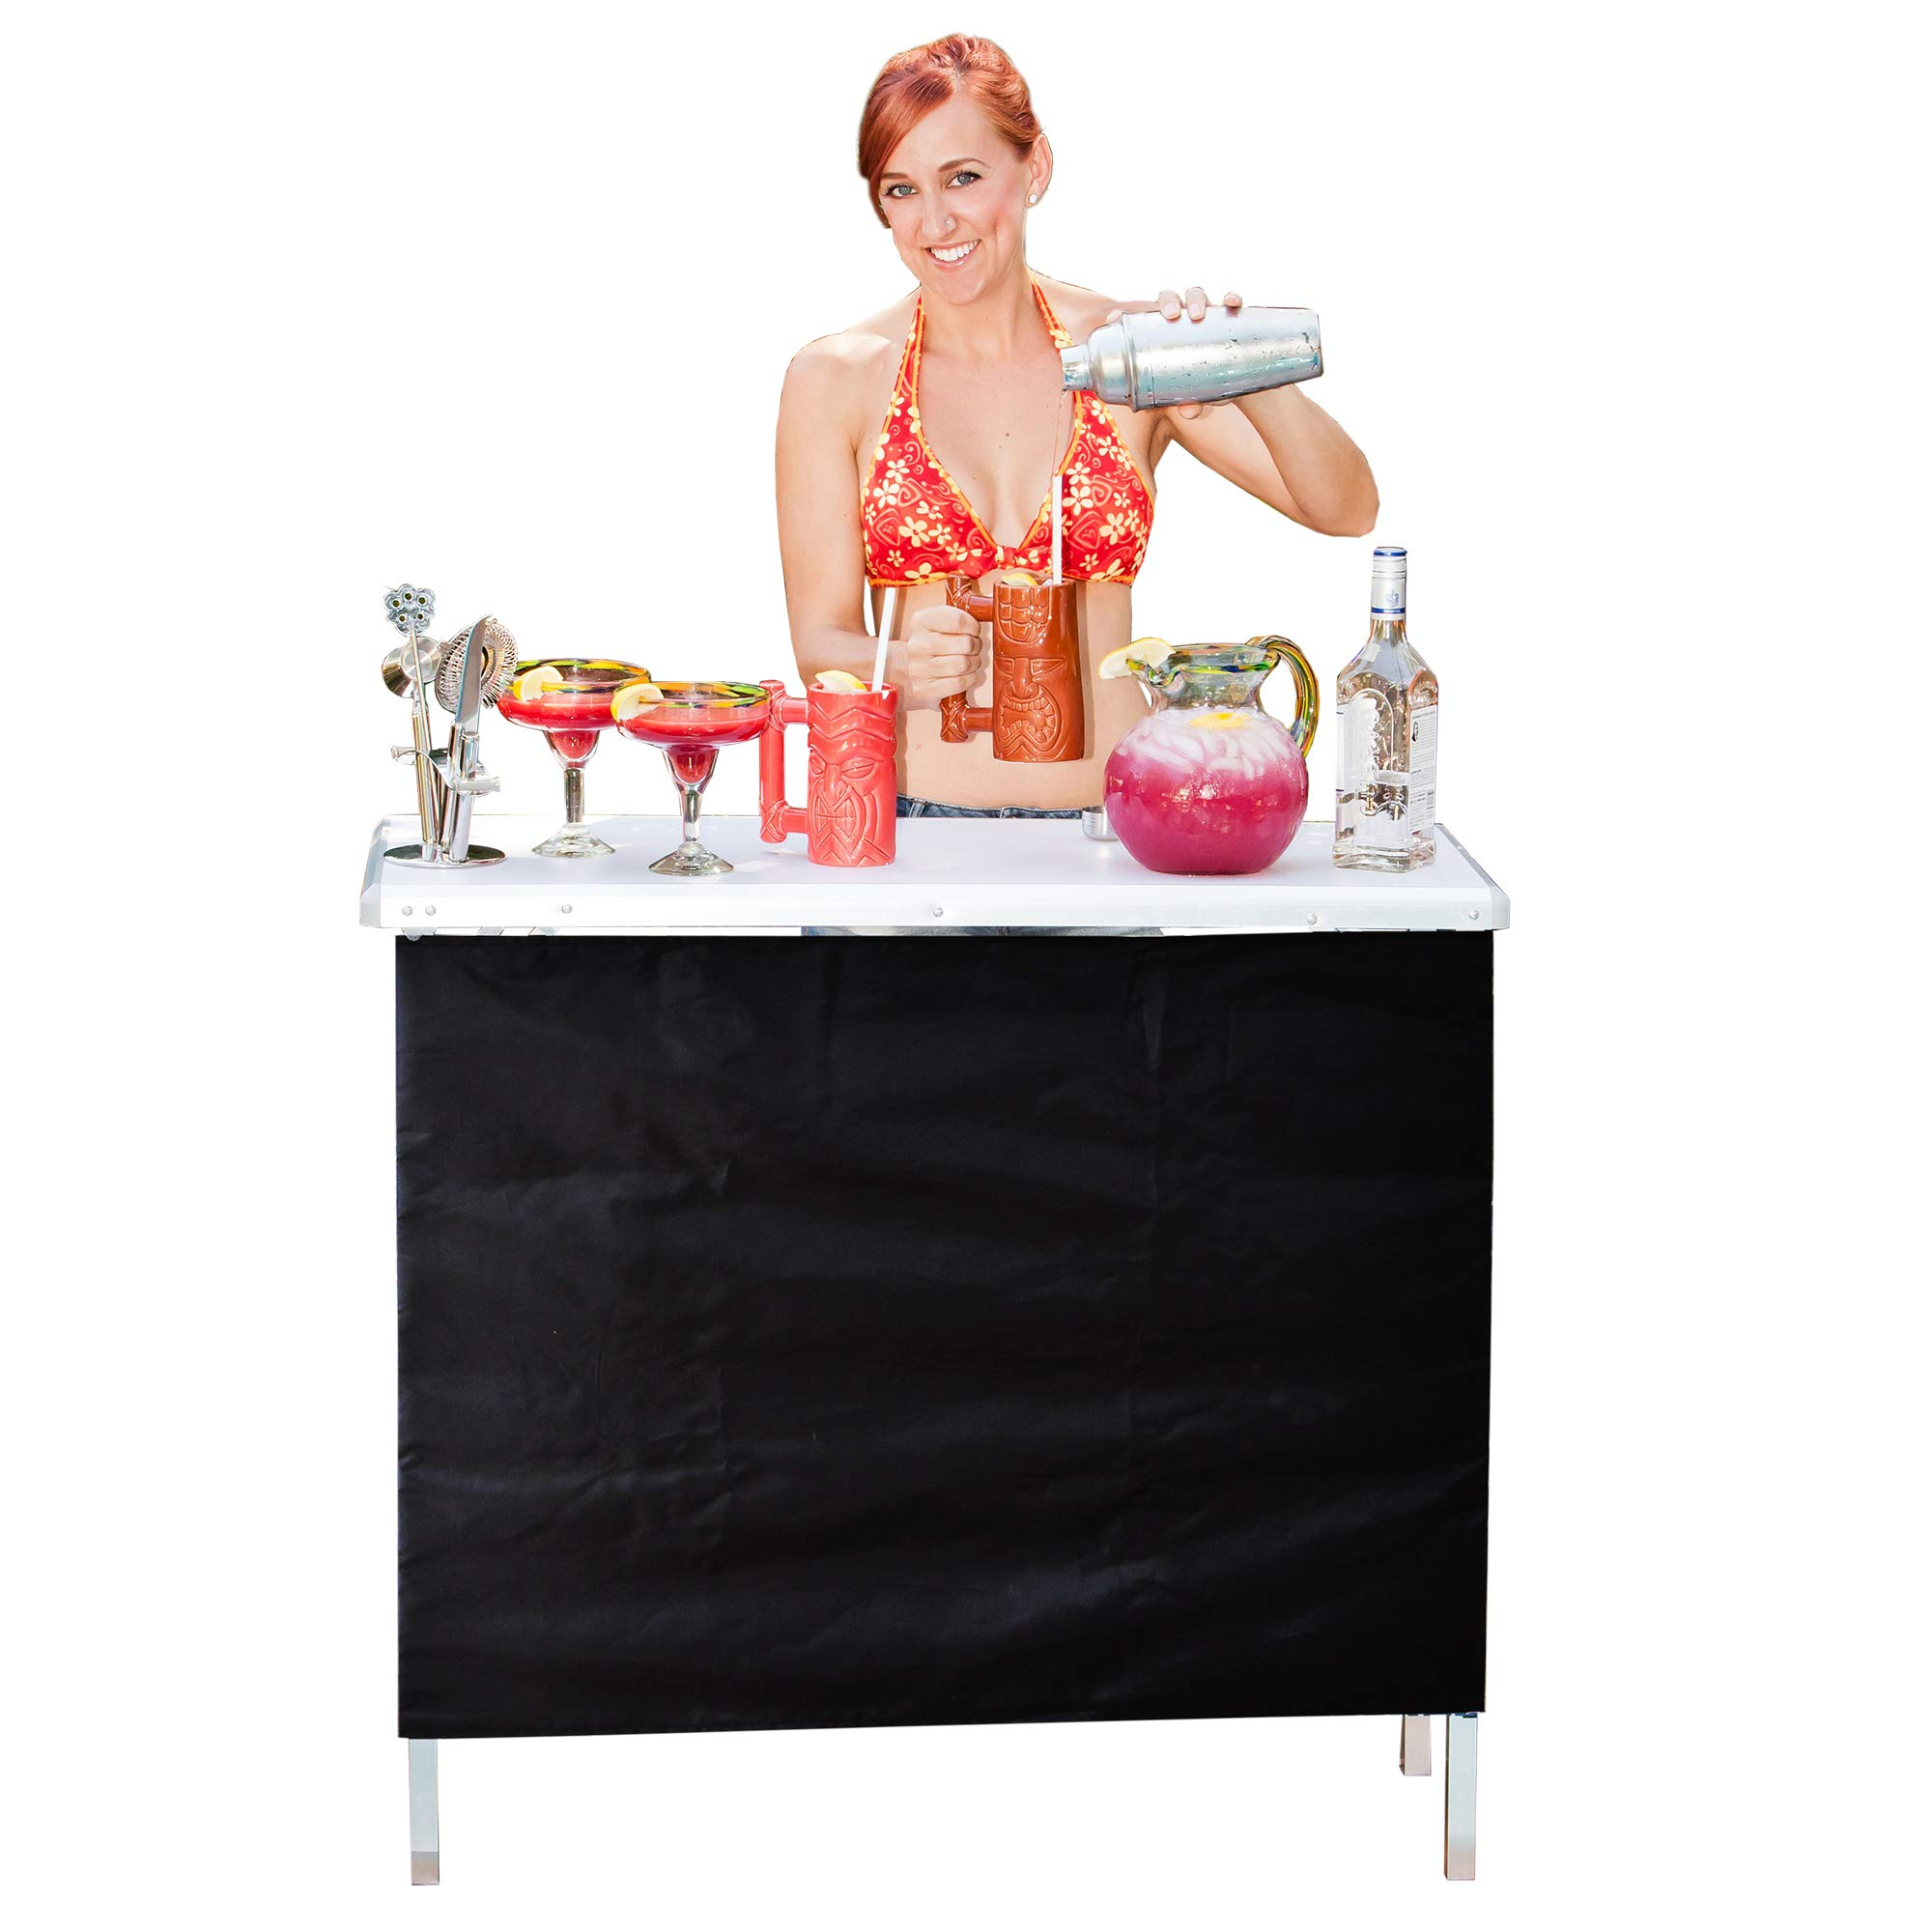 GoPong GoBar Portable High Top Party Bar, Includes 3 Skirt Designs and Carrying Case - Great for Parties, Tailgating and Trade Shows